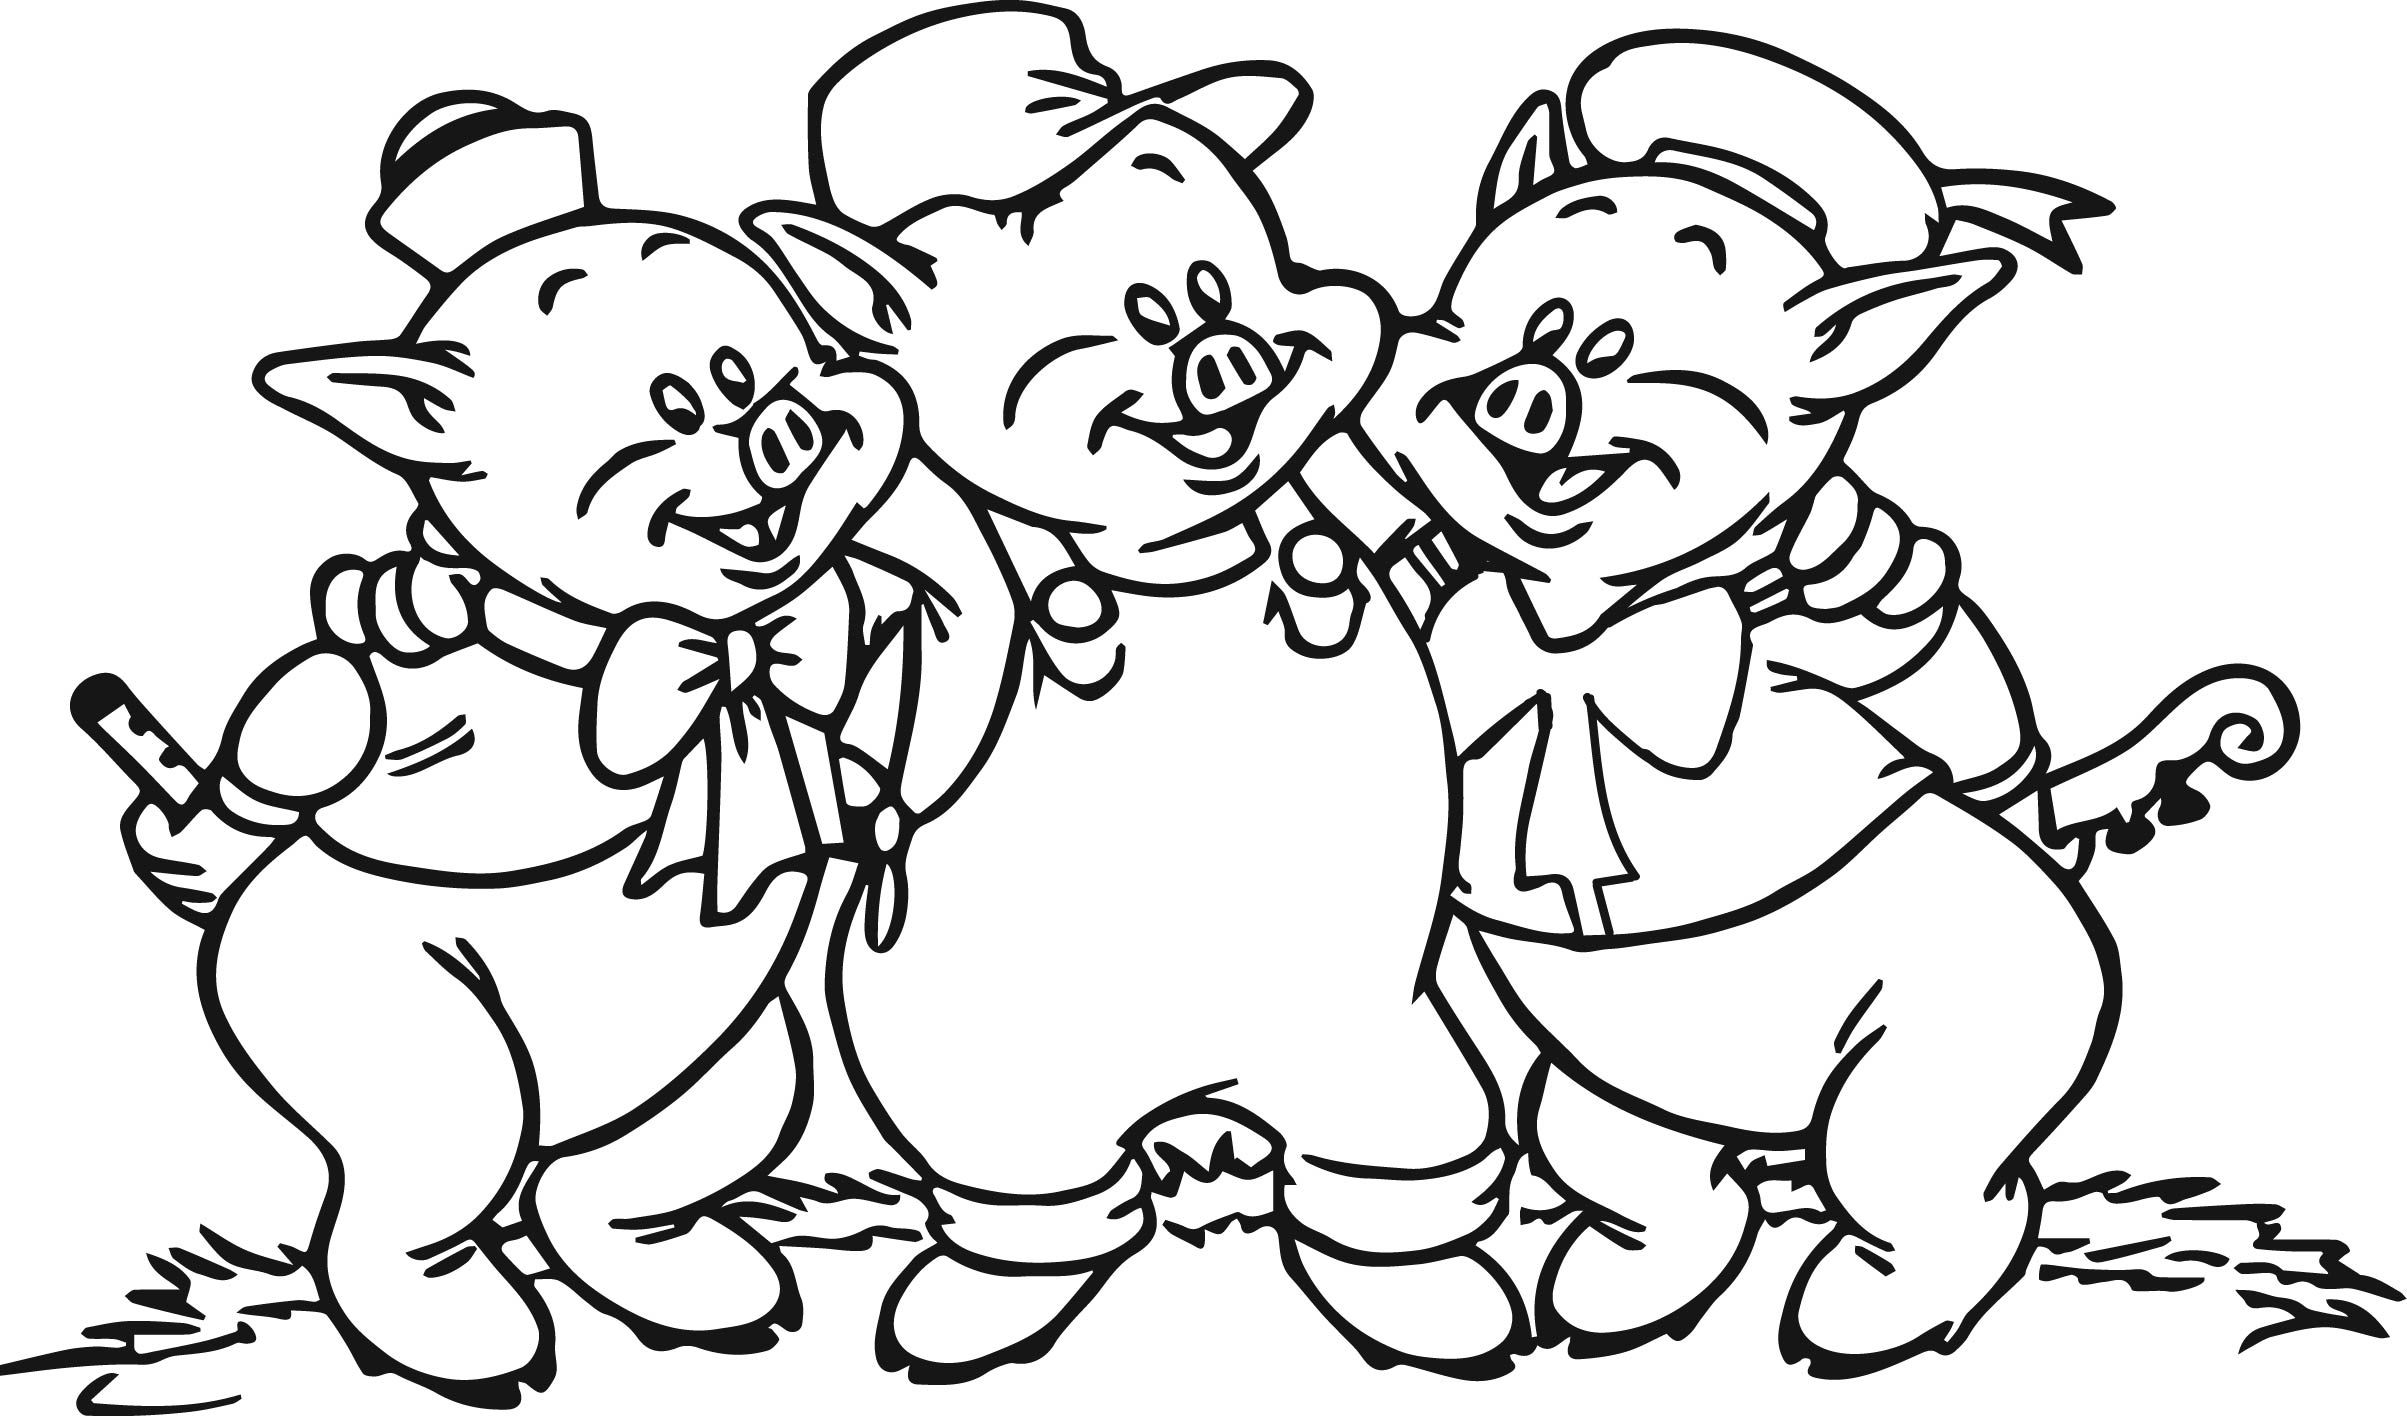 Nice 3 Little Pigs Coloring Page Coloring Pages Disney Coloring Pages Three Little Pig